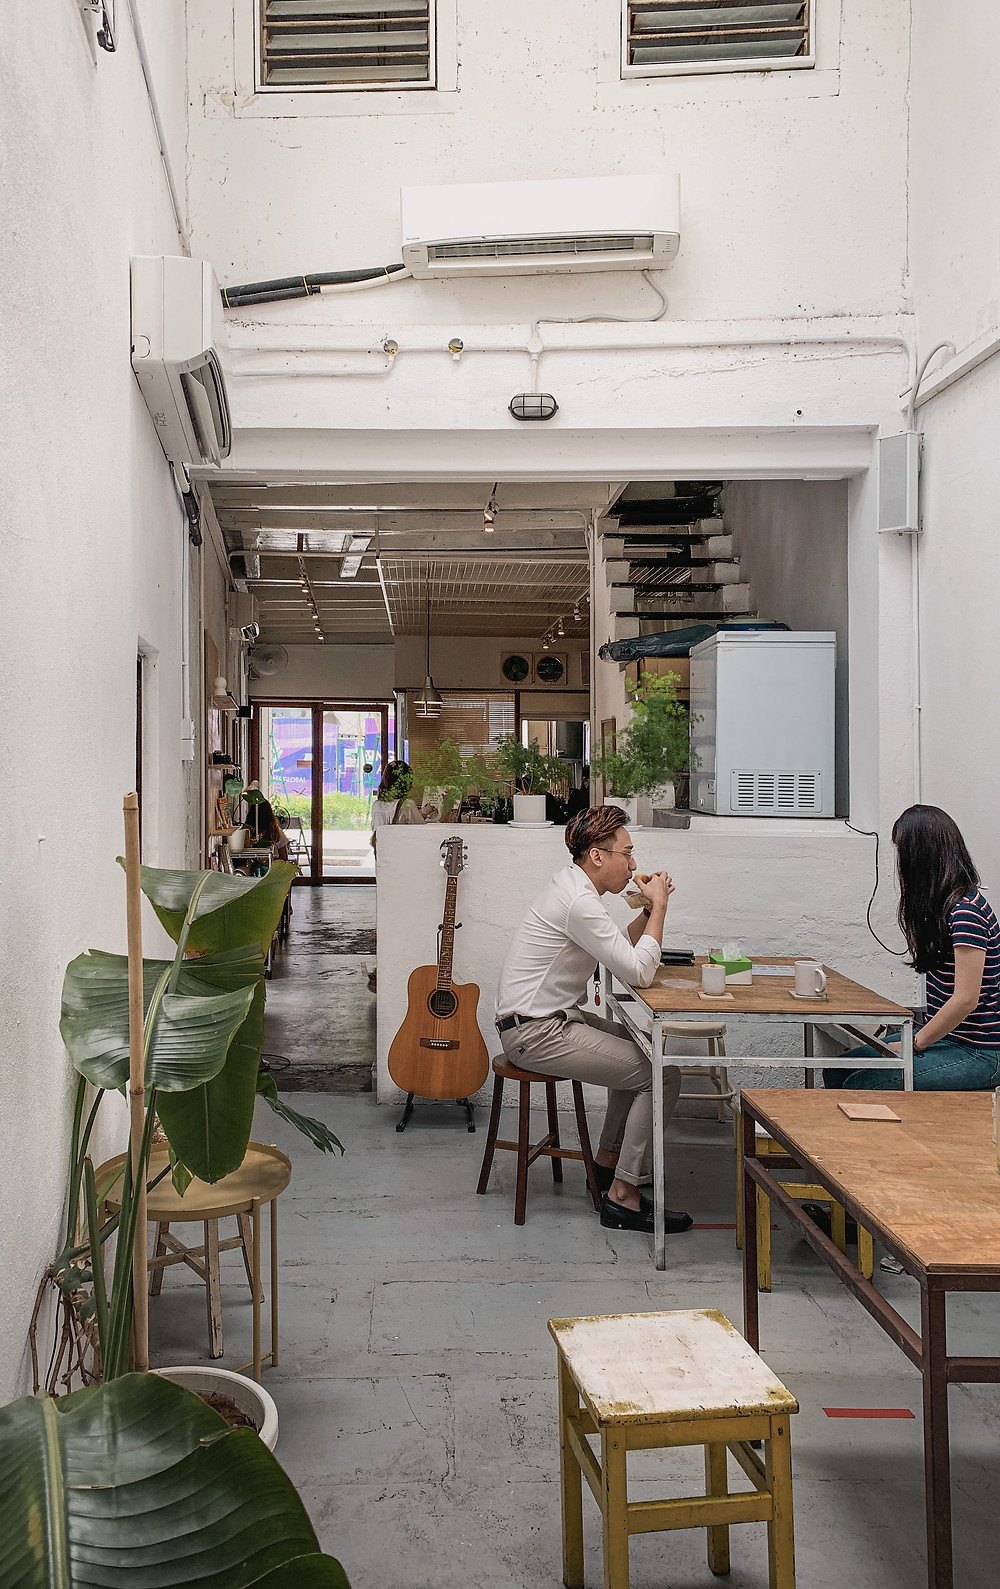 Industrial minimalist decor of Le楽 Cafe, Penang, RollingBear Travels interior photography.